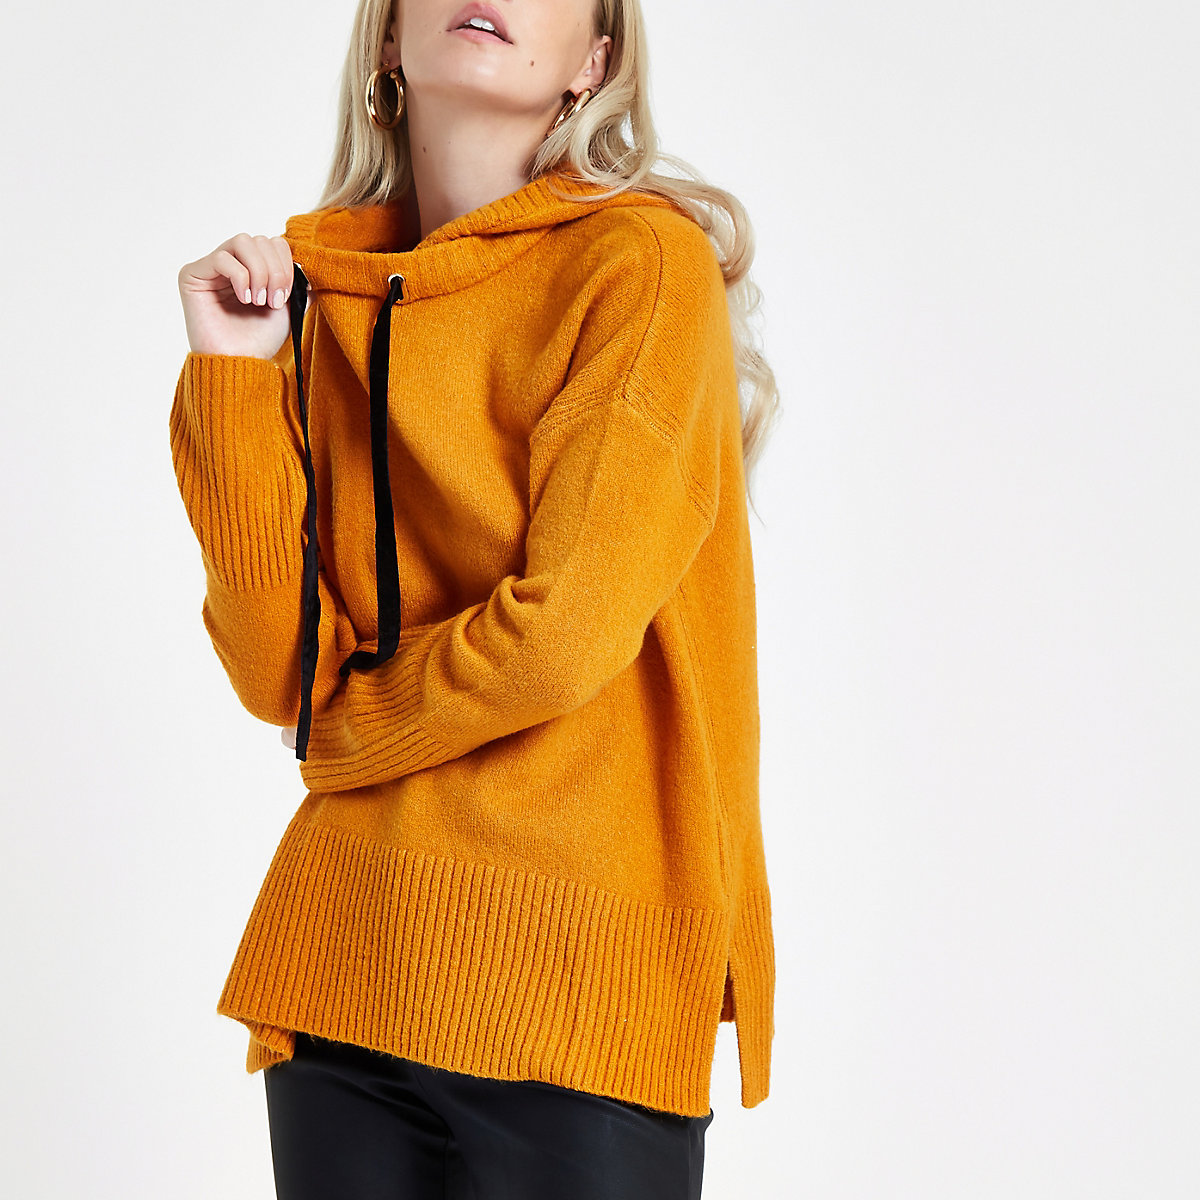 Petite orange knitted hooded sweater